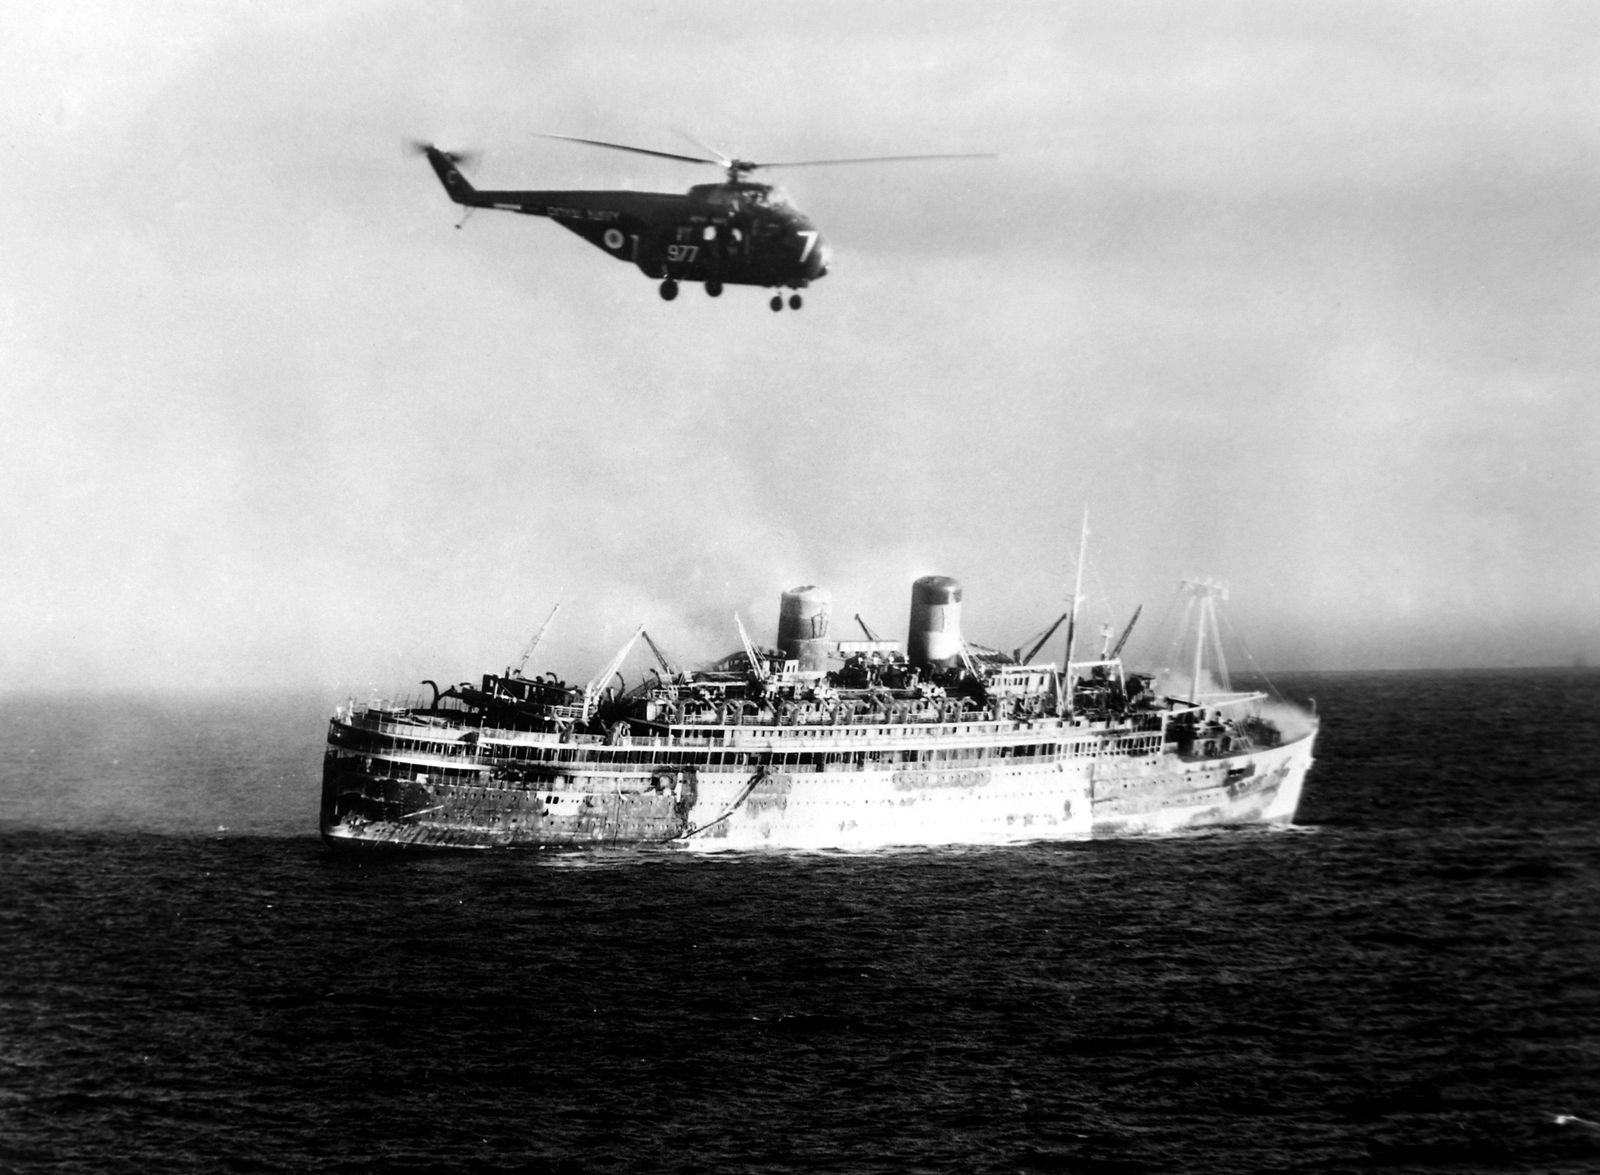 27 DECEMBER 1963 THE CRUISE LINER LAKONIA WHICH CAUGHT FIRE IN THE ATLANTIC OCEAN ABOUT 180 MILES NO